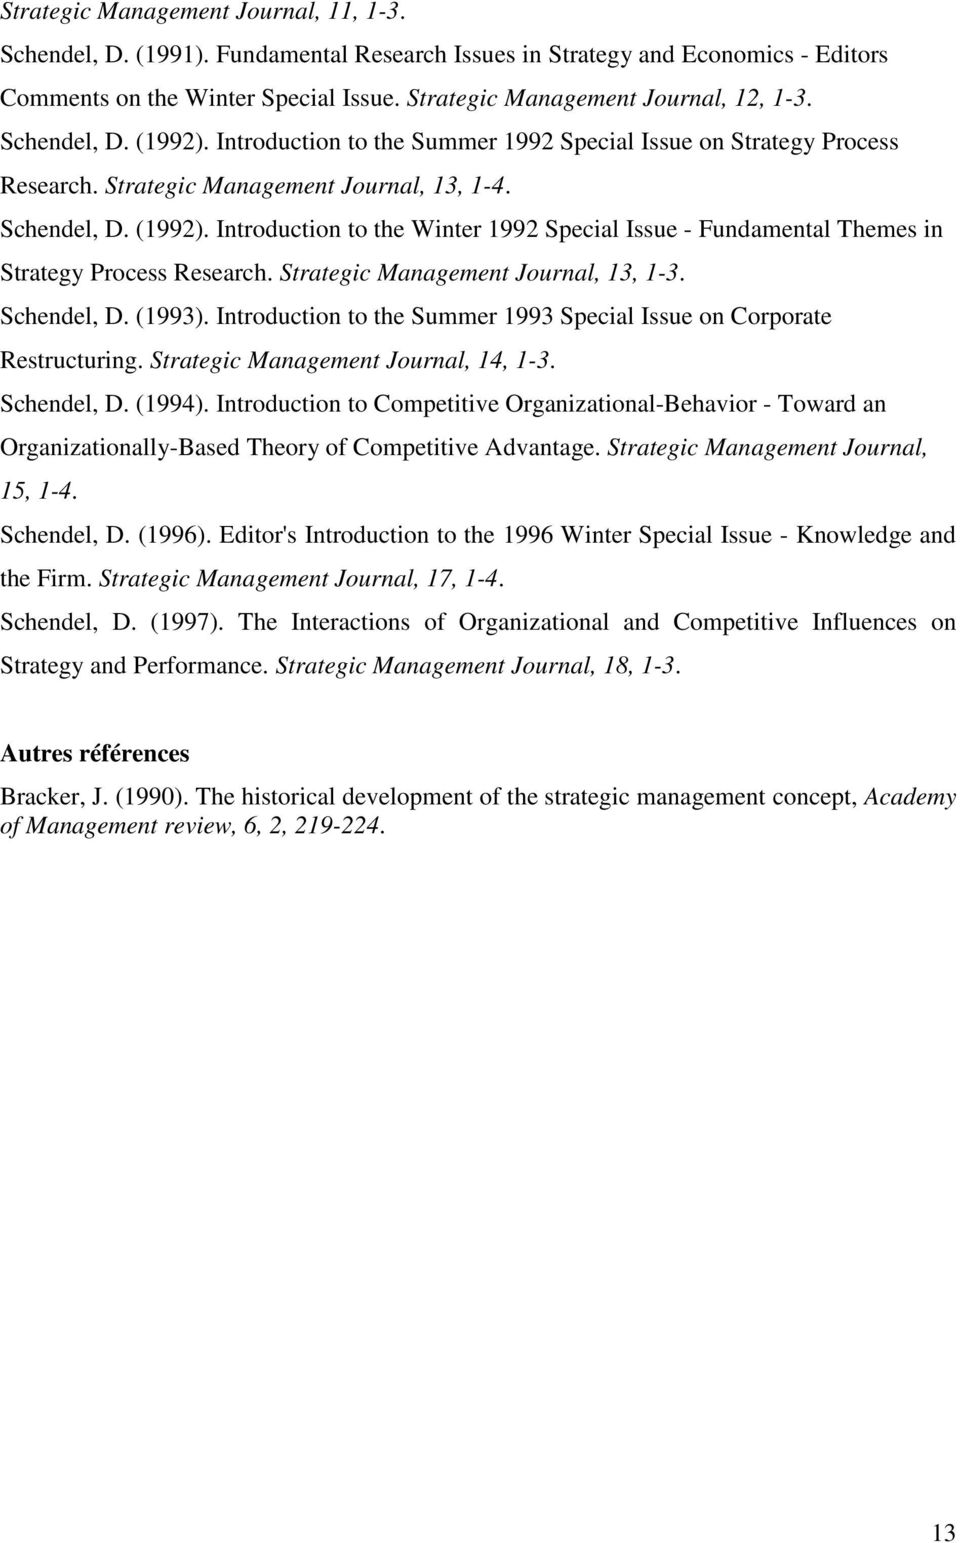 Strategic Management Journal, 13, 1-3. Schendel, D. (1993). Introduction to the Summer 1993 Special Issue on Corporate Restructuring. Strategic Management Journal, 14, 1-3. Schendel, D. (1994).